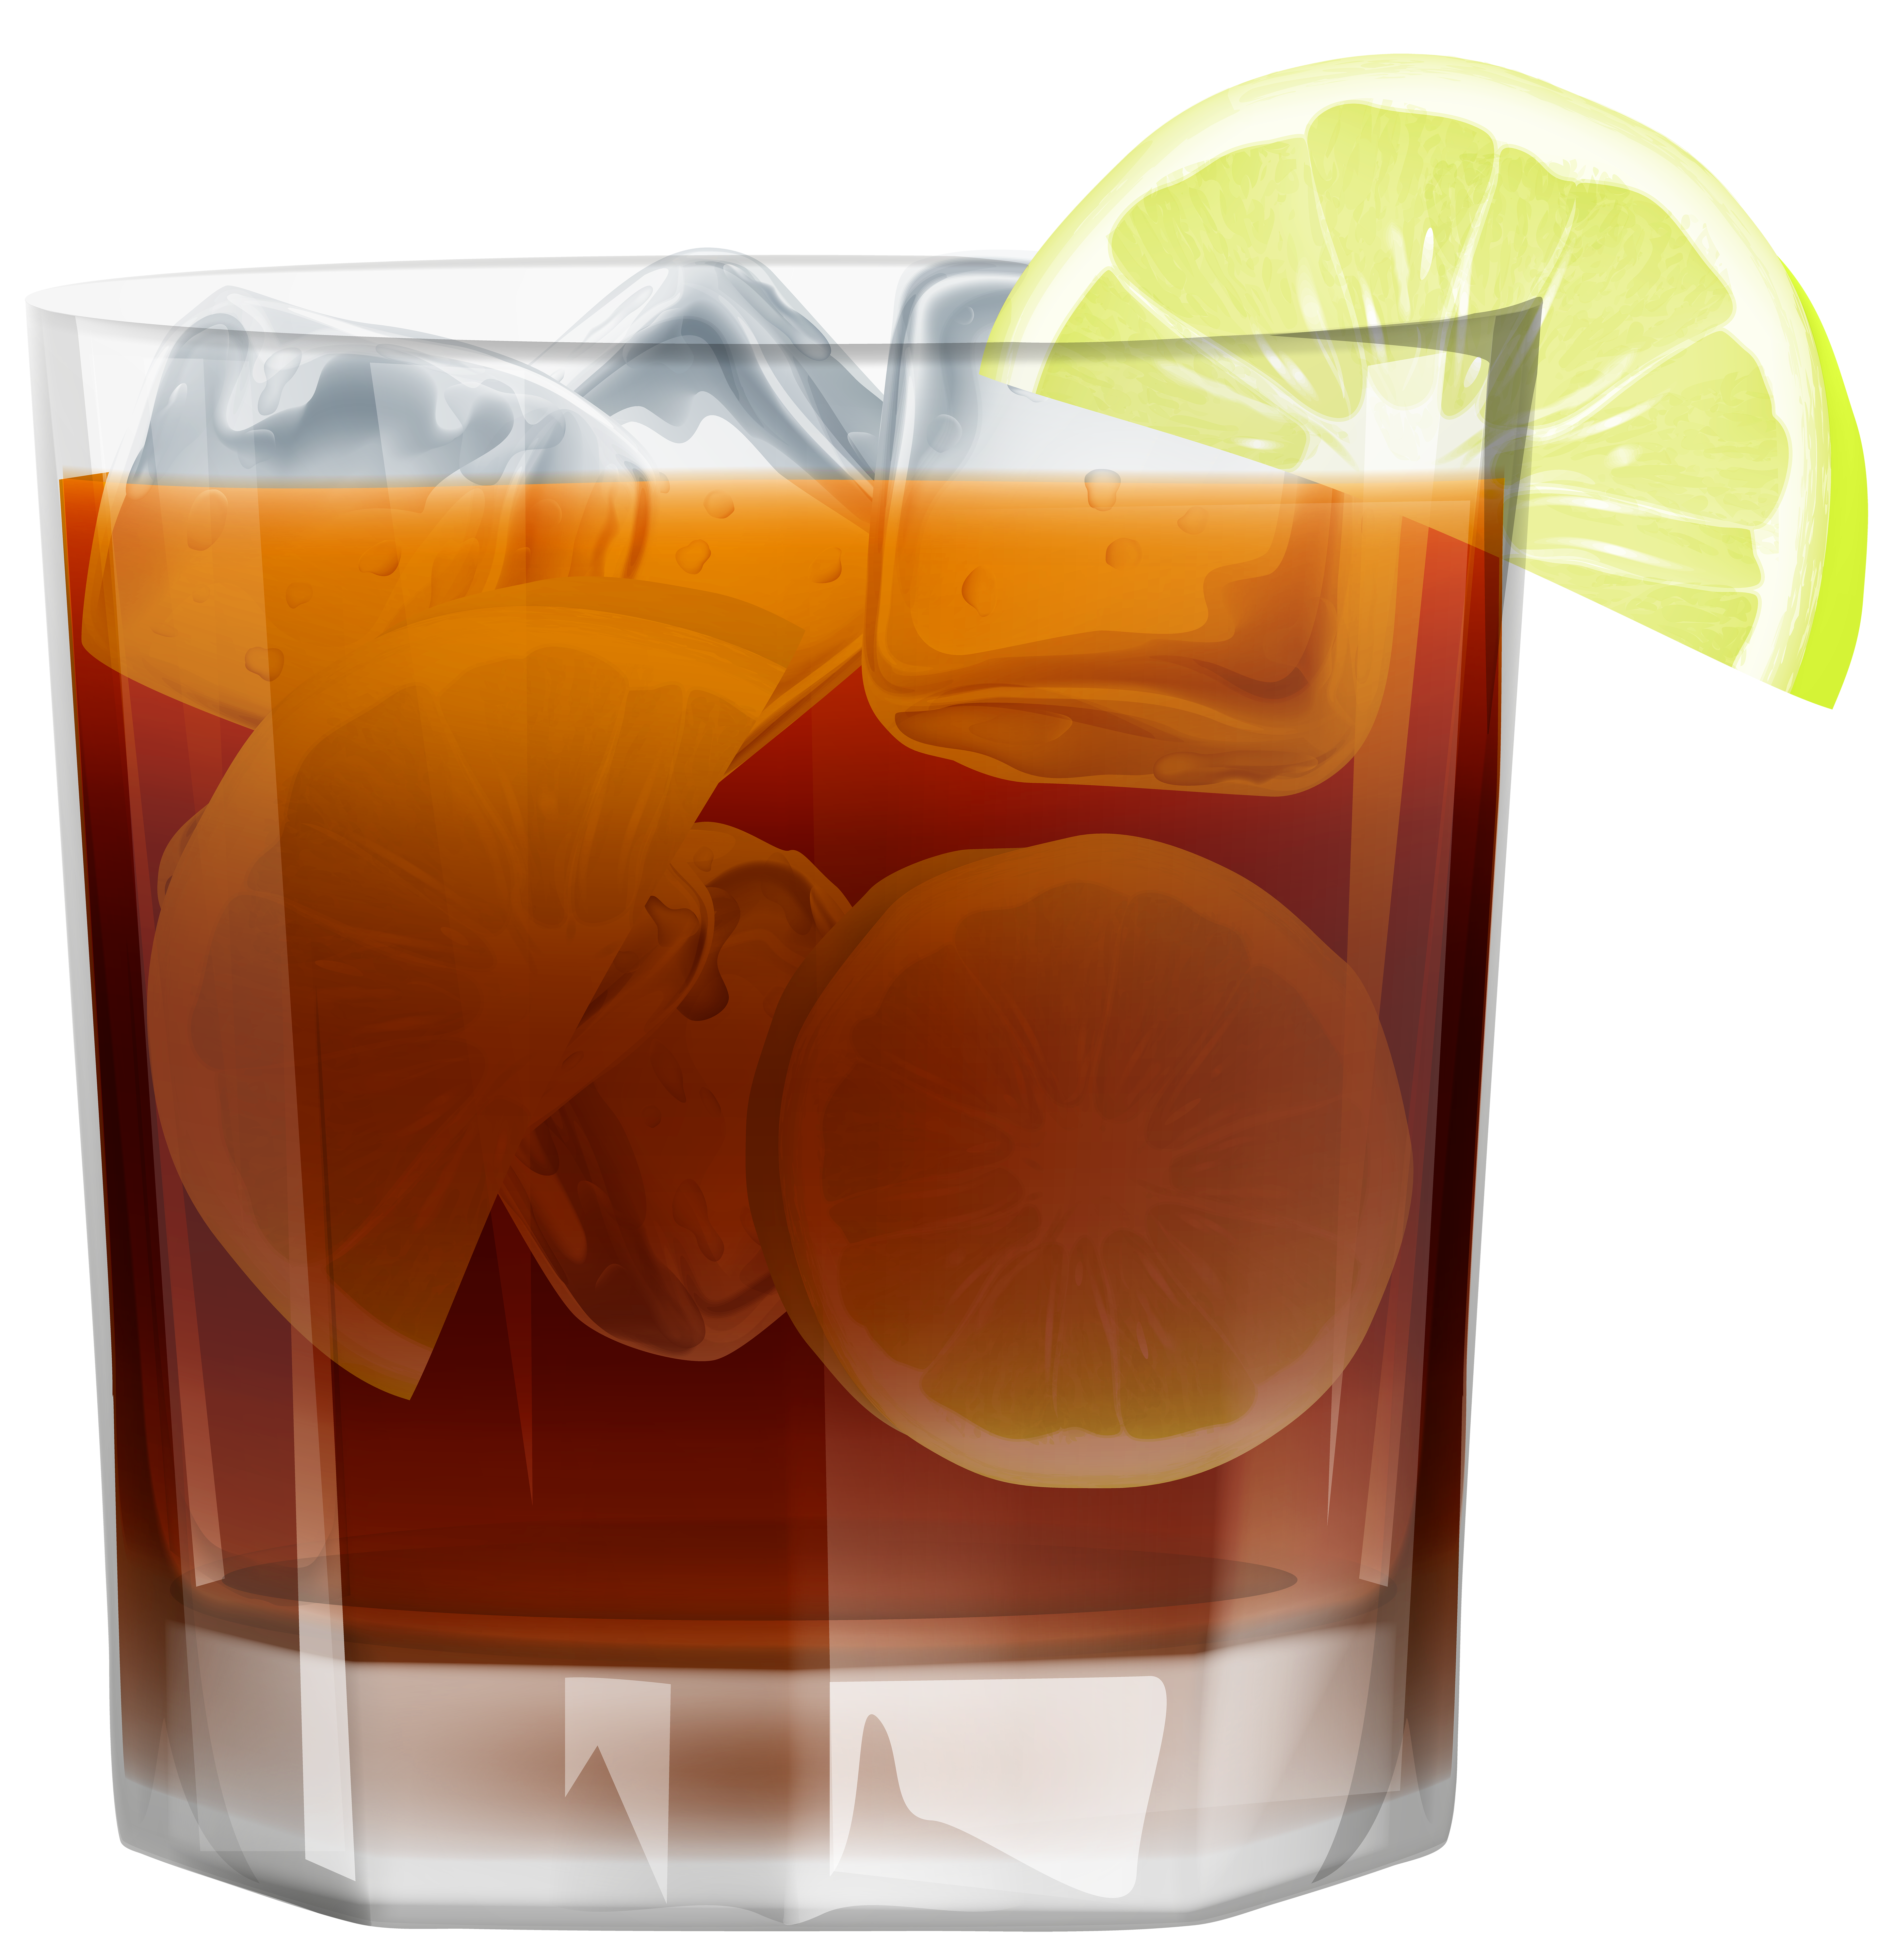 Cocktails clipart old fashioned cocktail. Whiskey withice and lemon